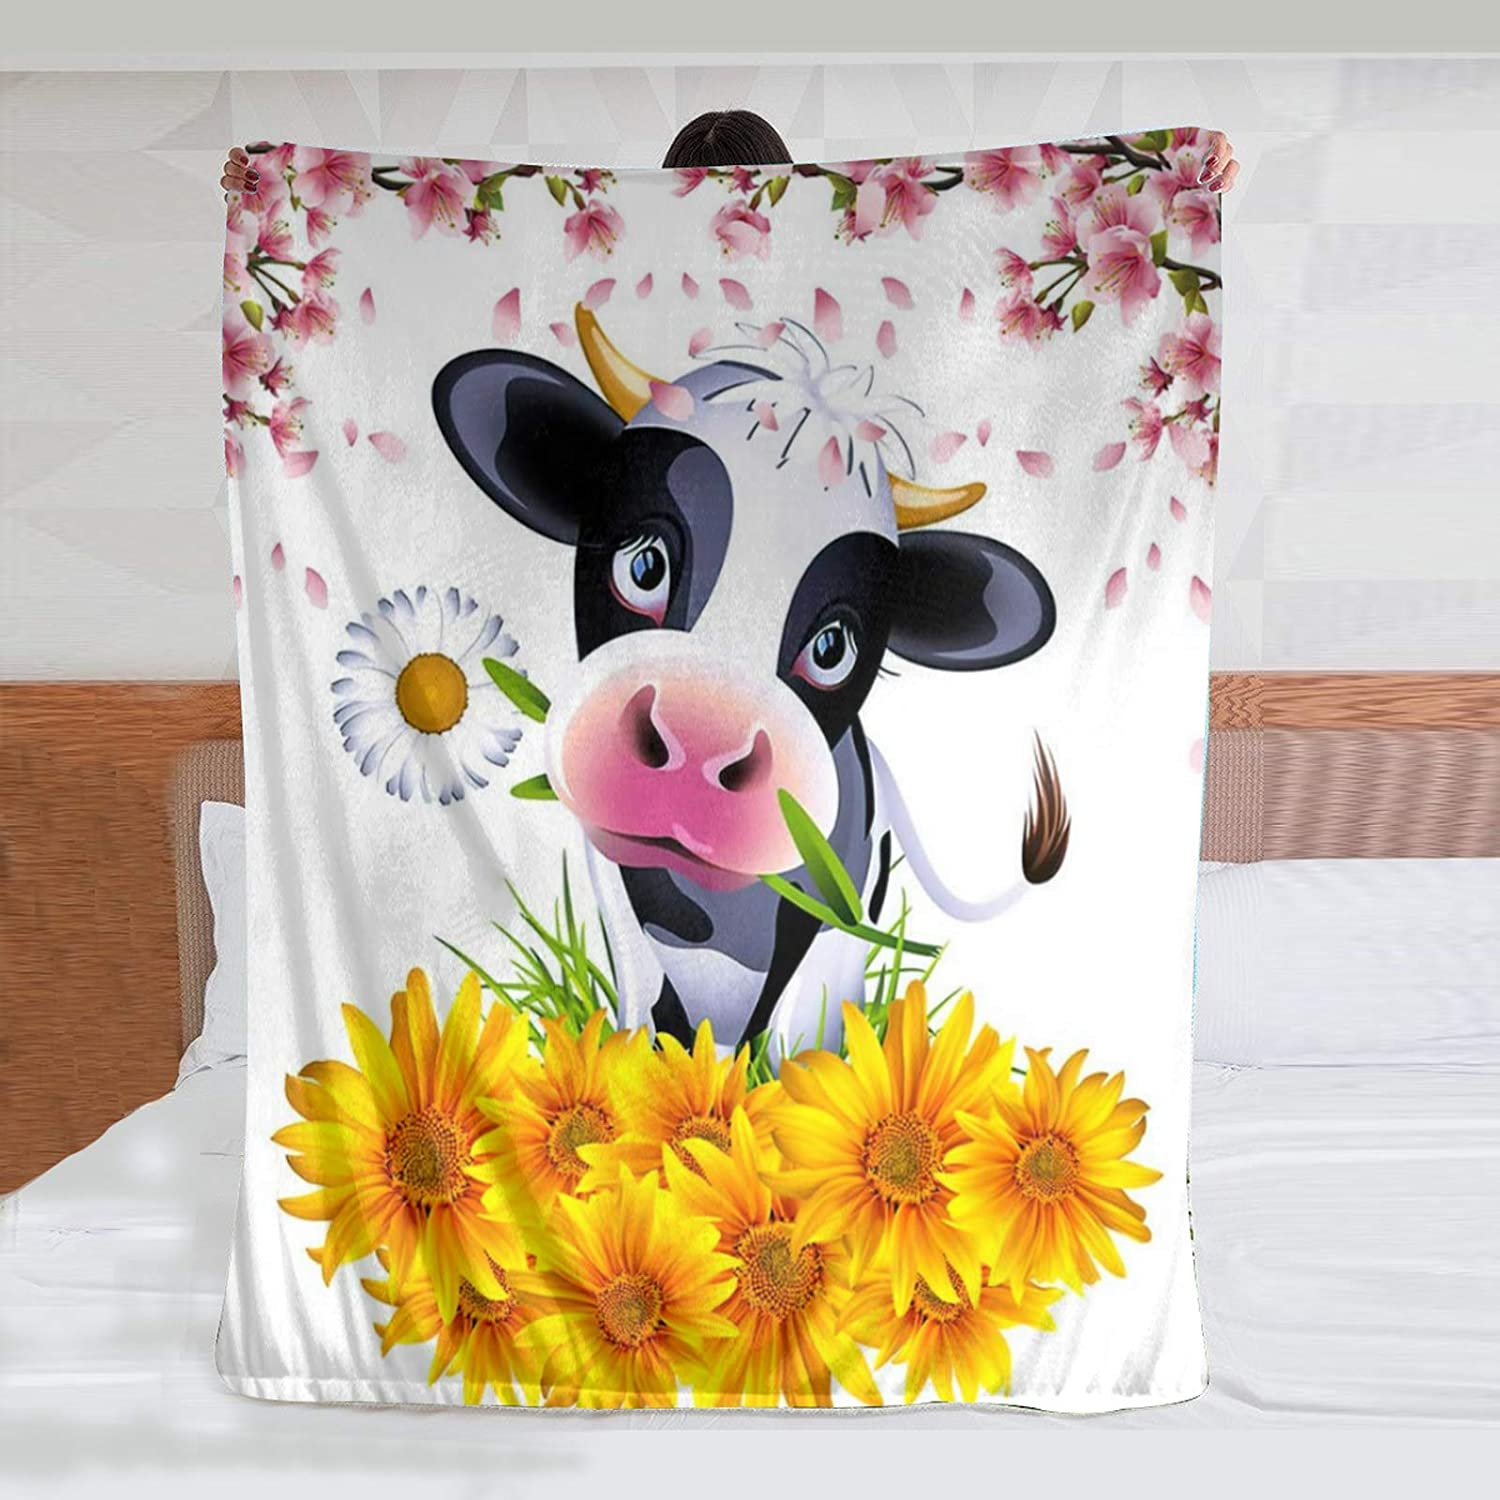 JASMODER Cartoon Cow Holding Flowers Throw Blanket Warm Ultra-Soft Micro Fleece Blanket for Bed Couch Living Room